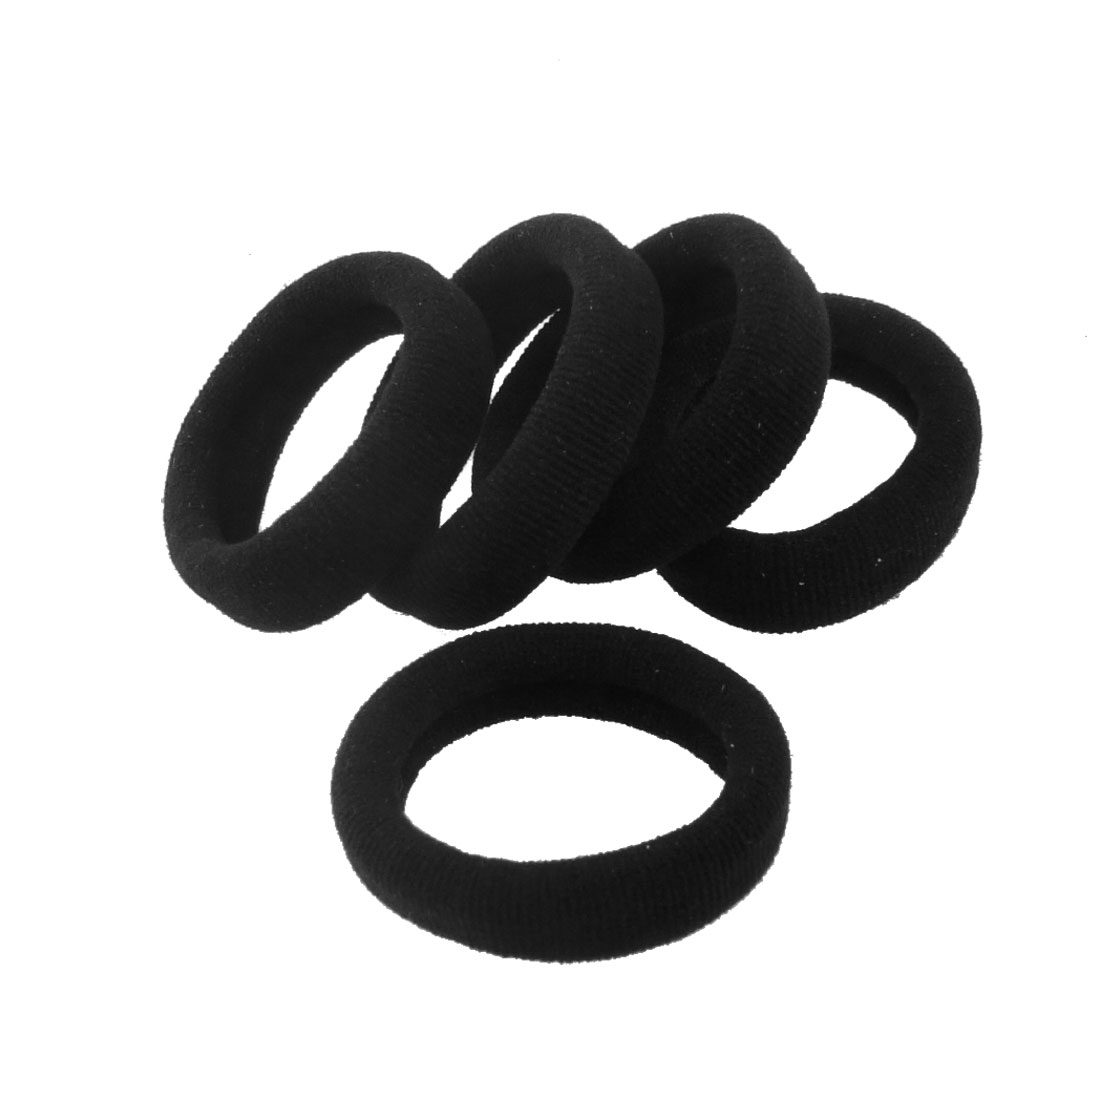 Unique Bargains 5 Pcs Stretchy Fabric Hair Ties Bands Ponytail Braid Holder  Elastics Black f4335e6655c